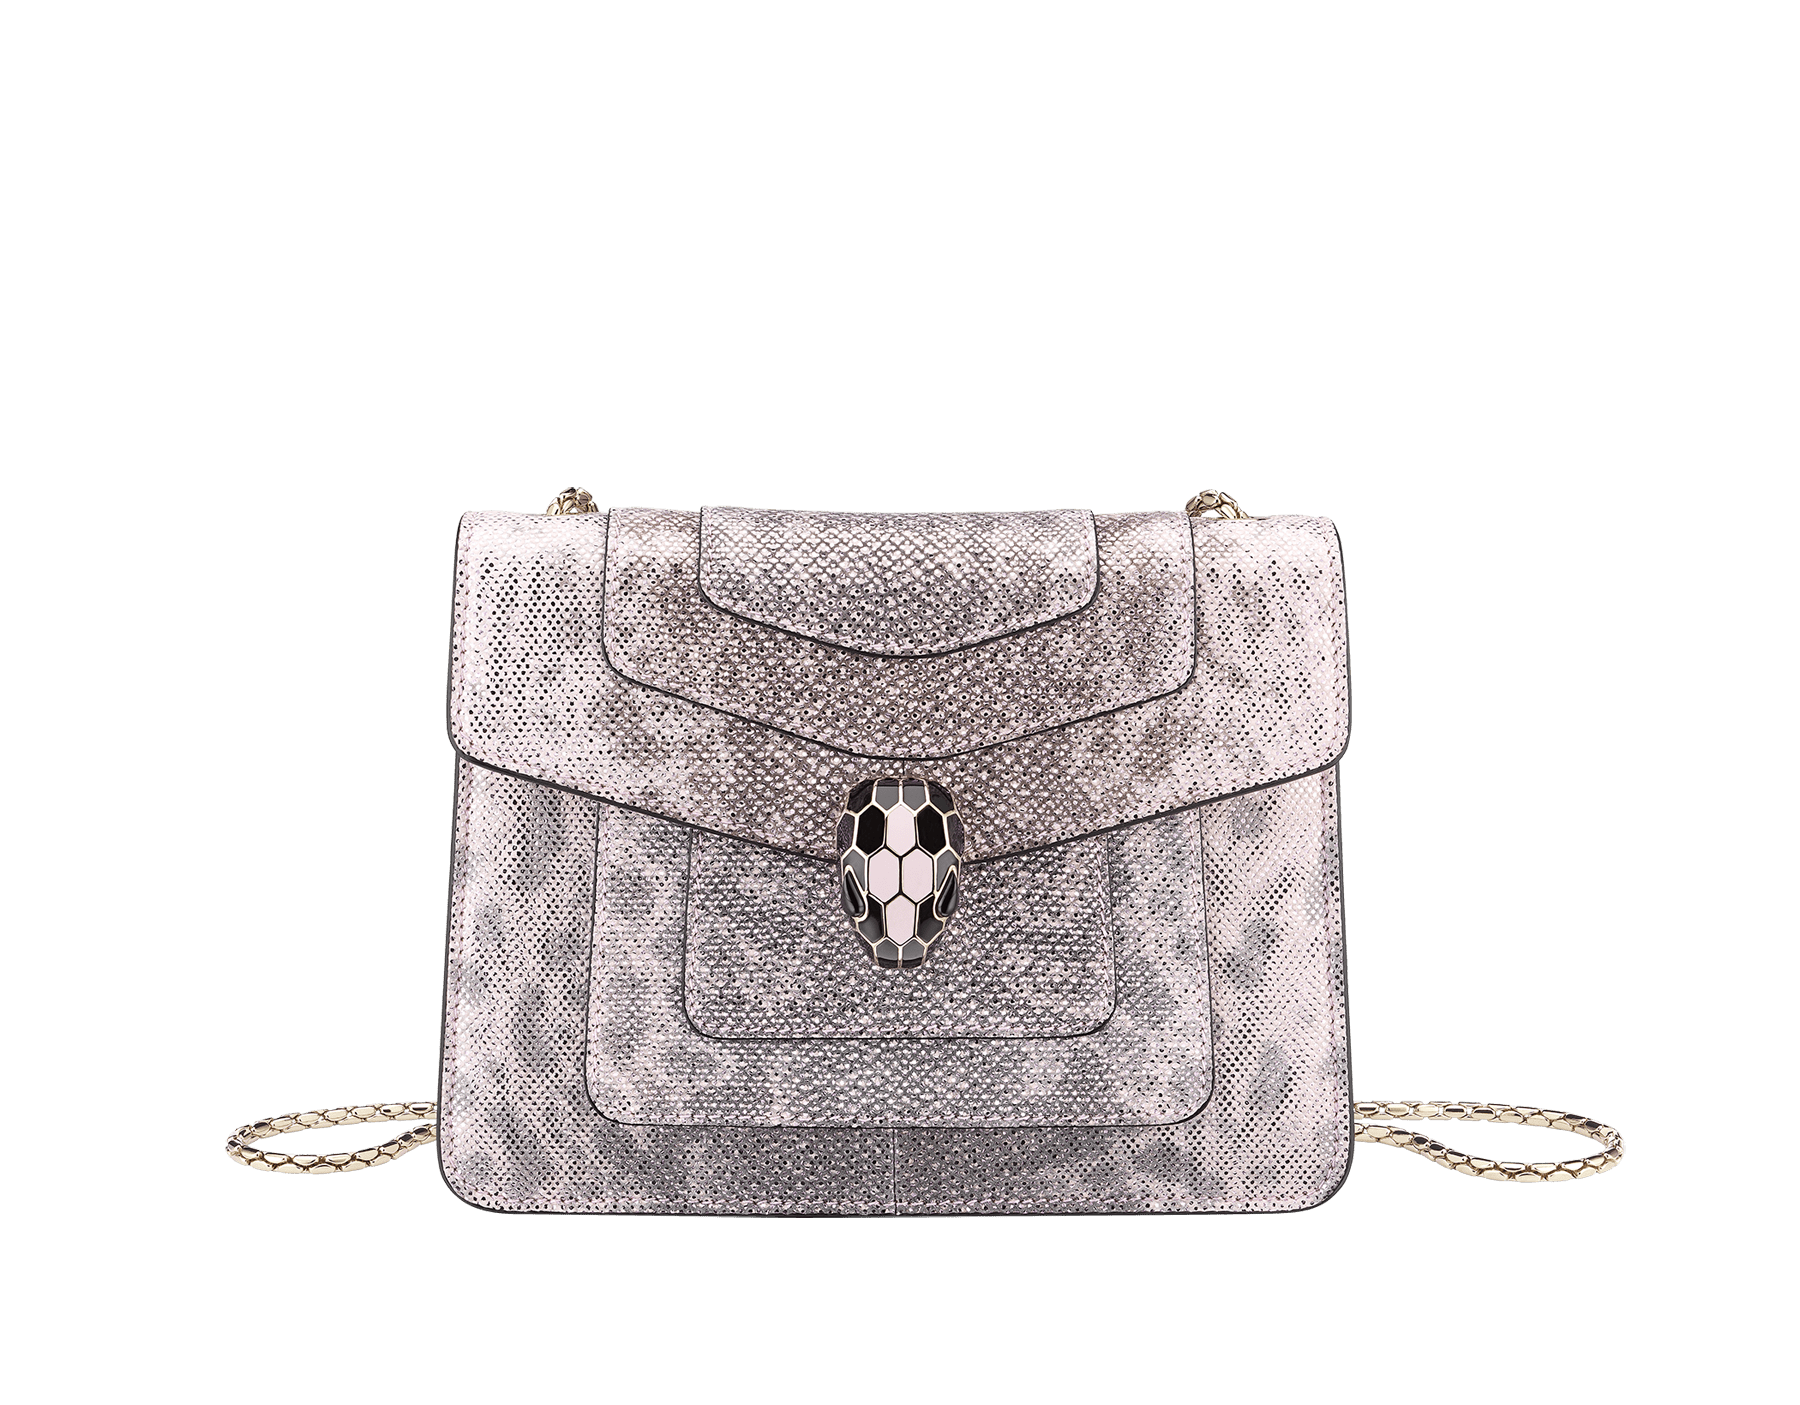 """Serpenti Forever"" crossbody bag in rosa di francia metallic karung skin. Iconic snakehead closure in light gold plated brass embellished with black and glitter rosa di francia enamel and black onyx eyes. 288781 image 1"